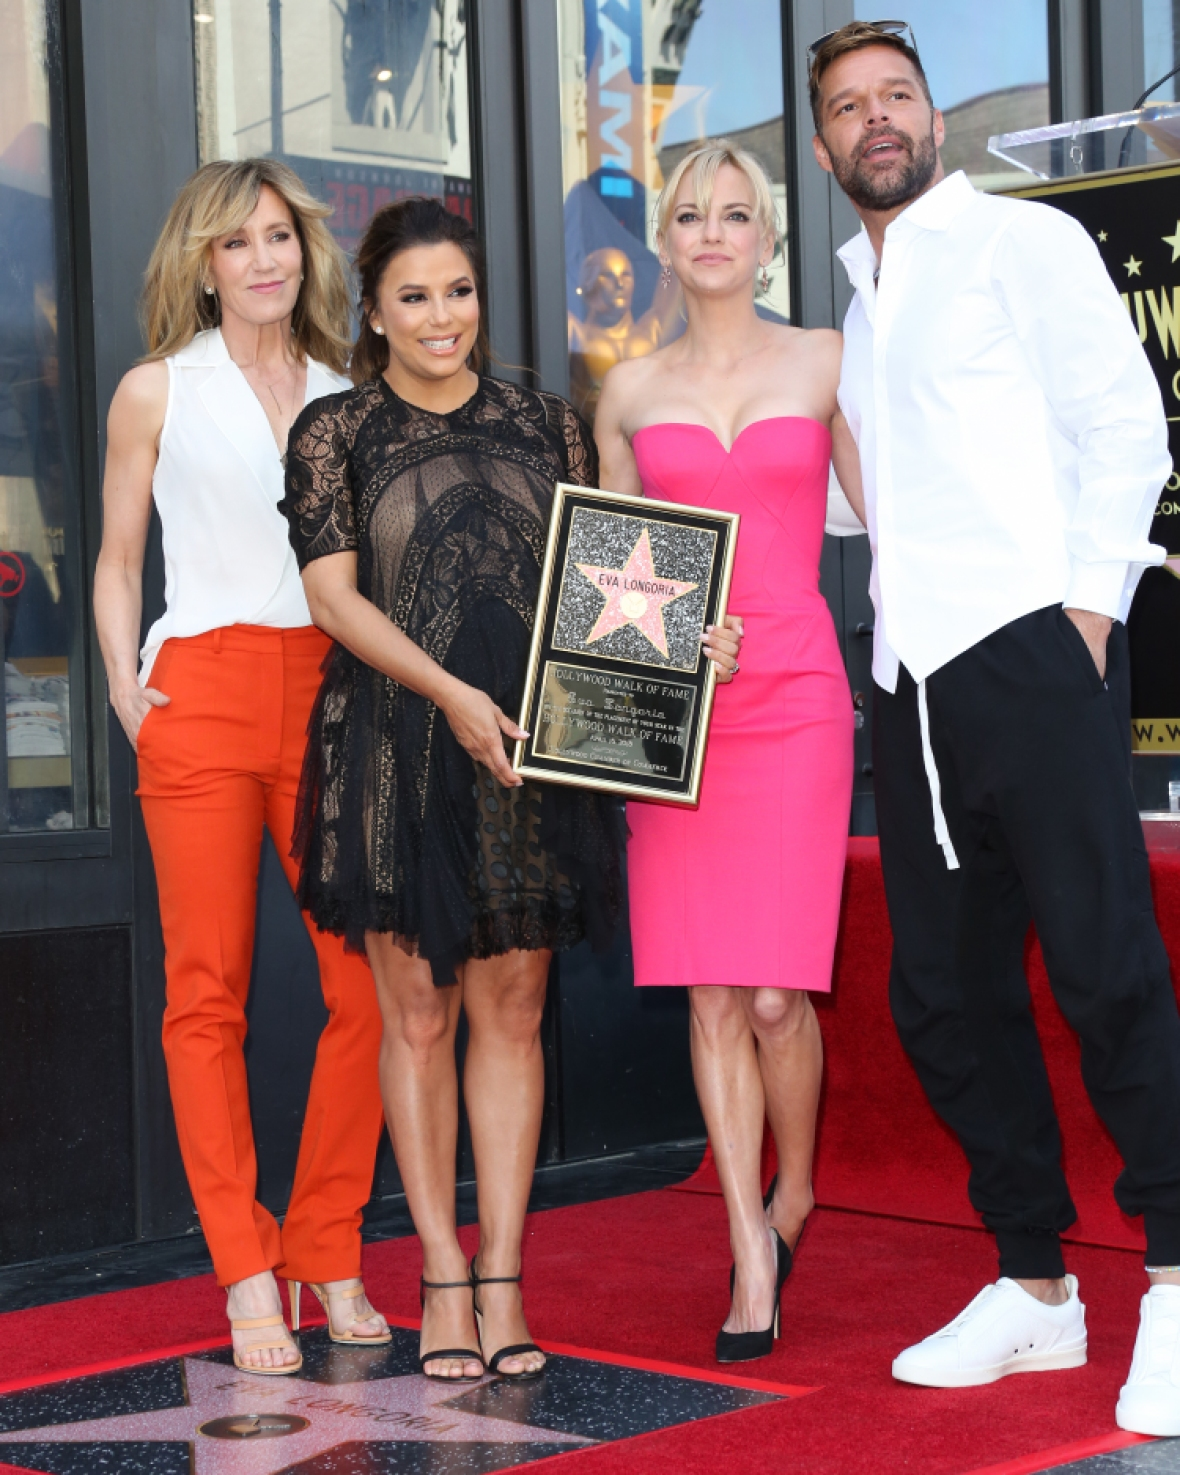 eva longoria hollywood walk of fame getty images